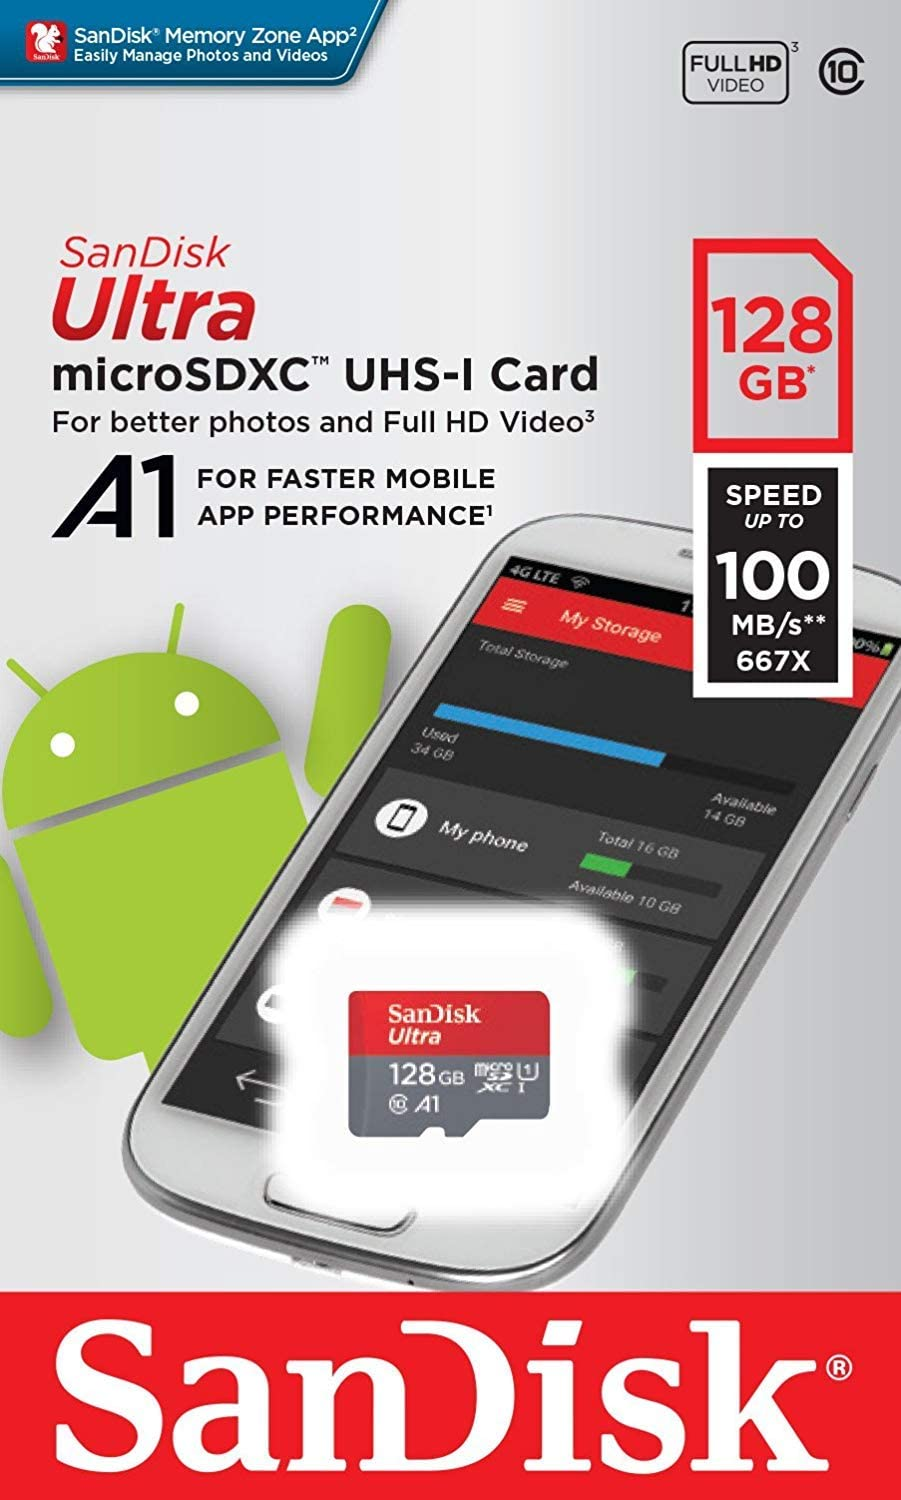 100MBs A1 U1 C10 Works with SanDisk SanDisk Ultra 128GB MicroSDXC Verified for ZTE Z995 by SanFlash